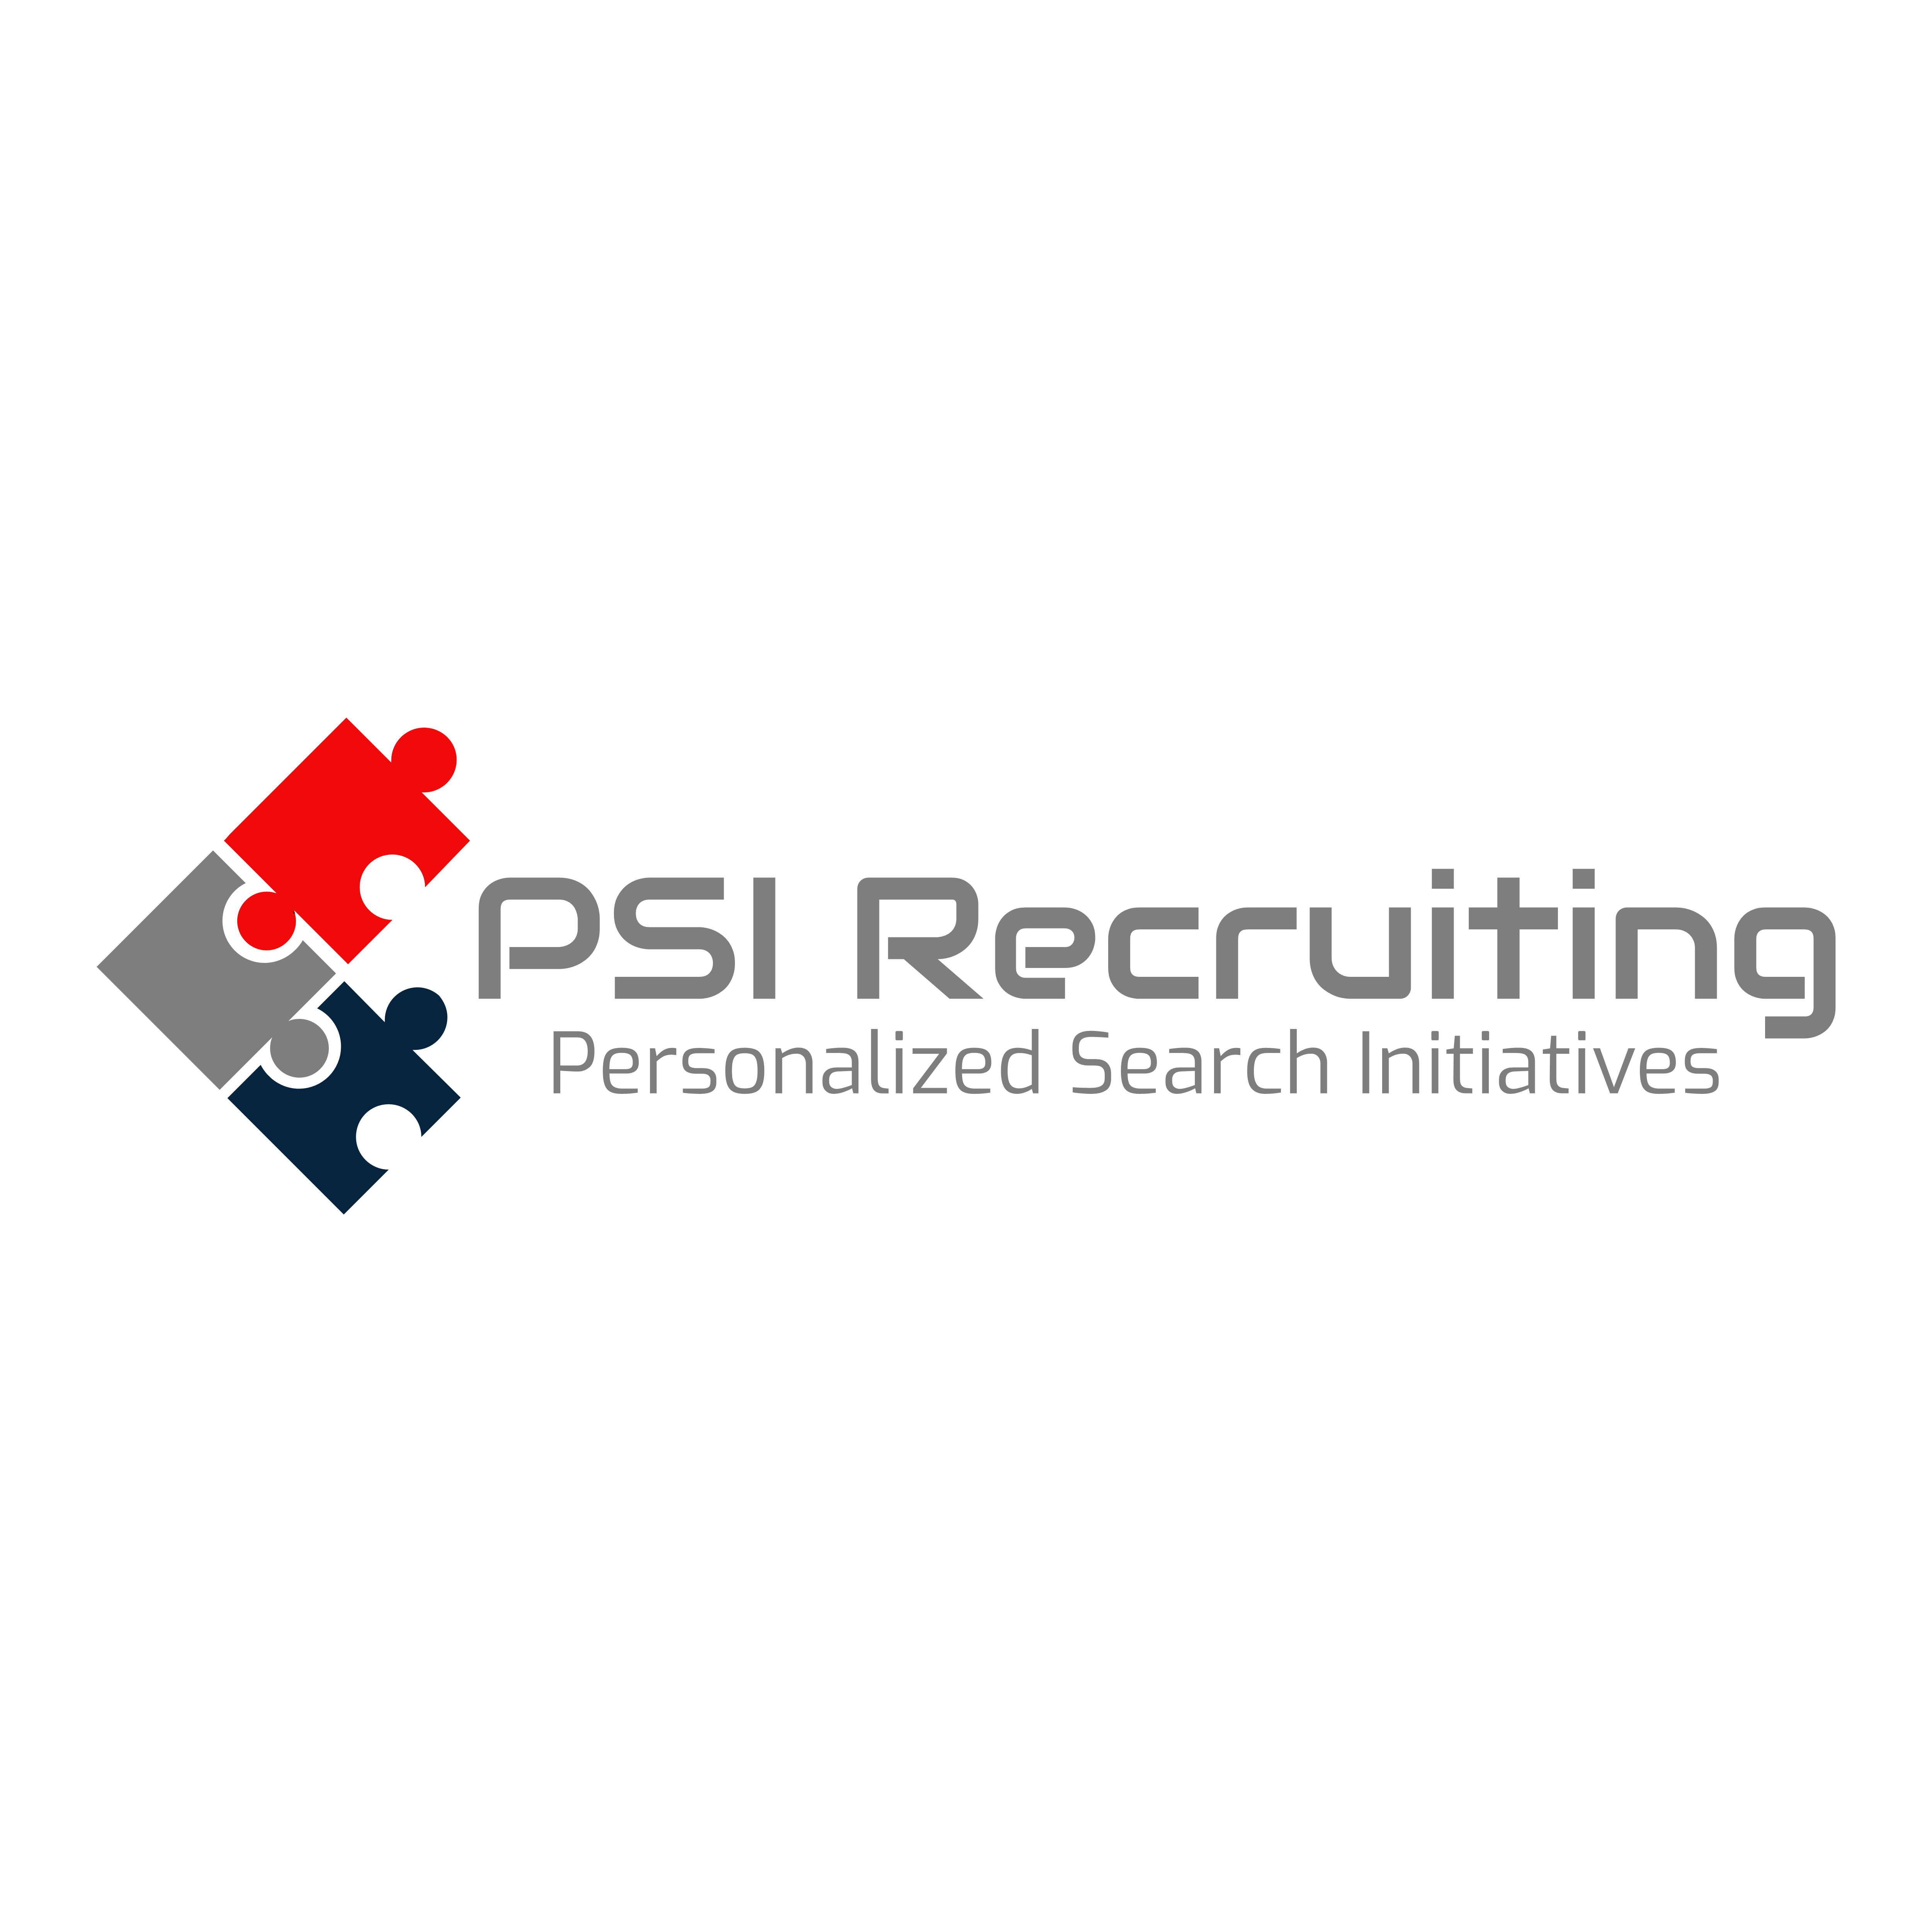 PSI Recruiting